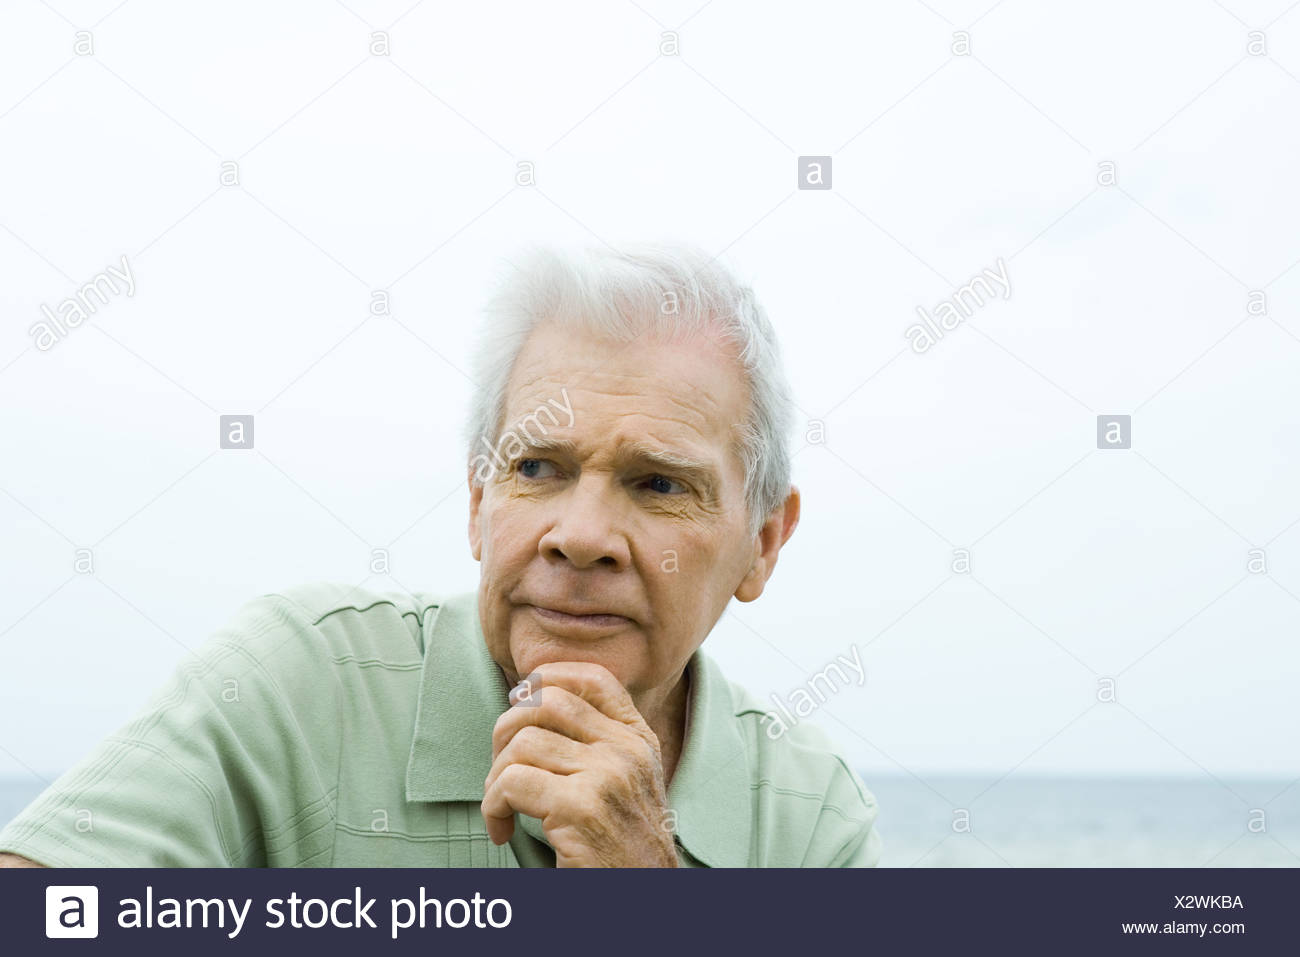 Senior man with hand under chin, furrowing brow, looking away - Stock Image